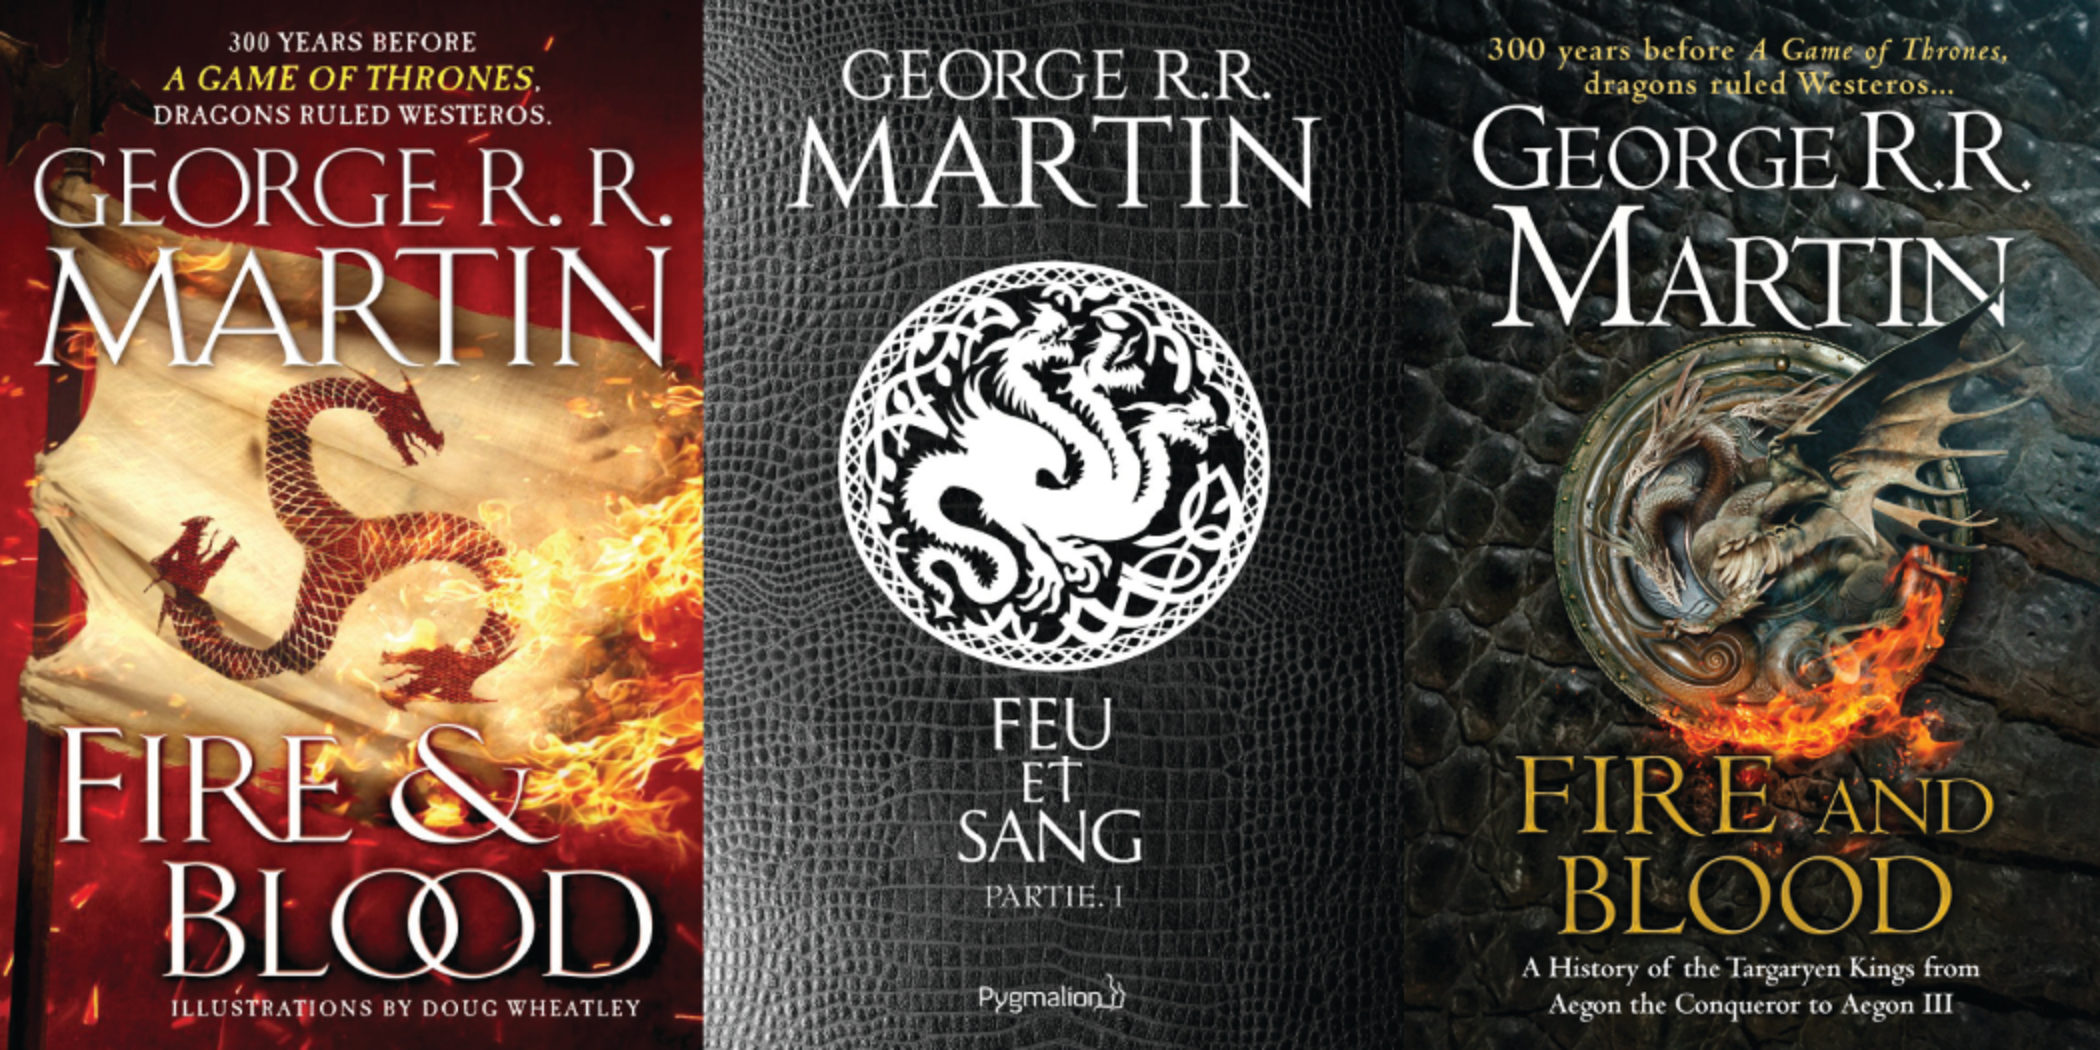 Fire And Blood Feu Et Sang Le Point Sur Le Livre De